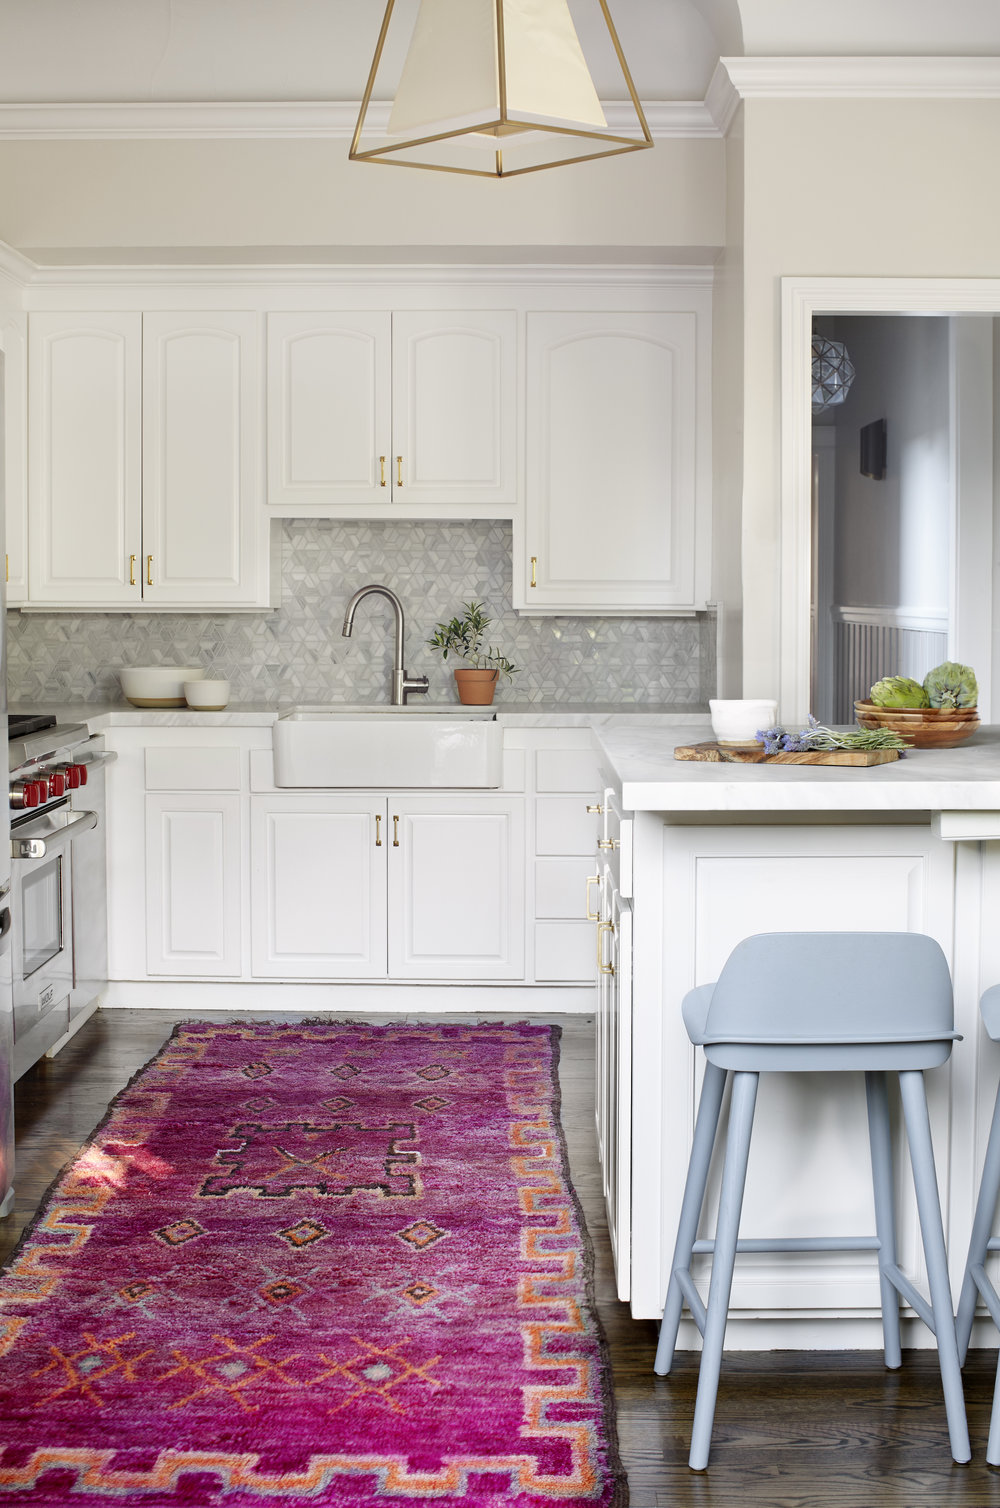 Lauren Nelson Design // California St Home // Kitchen